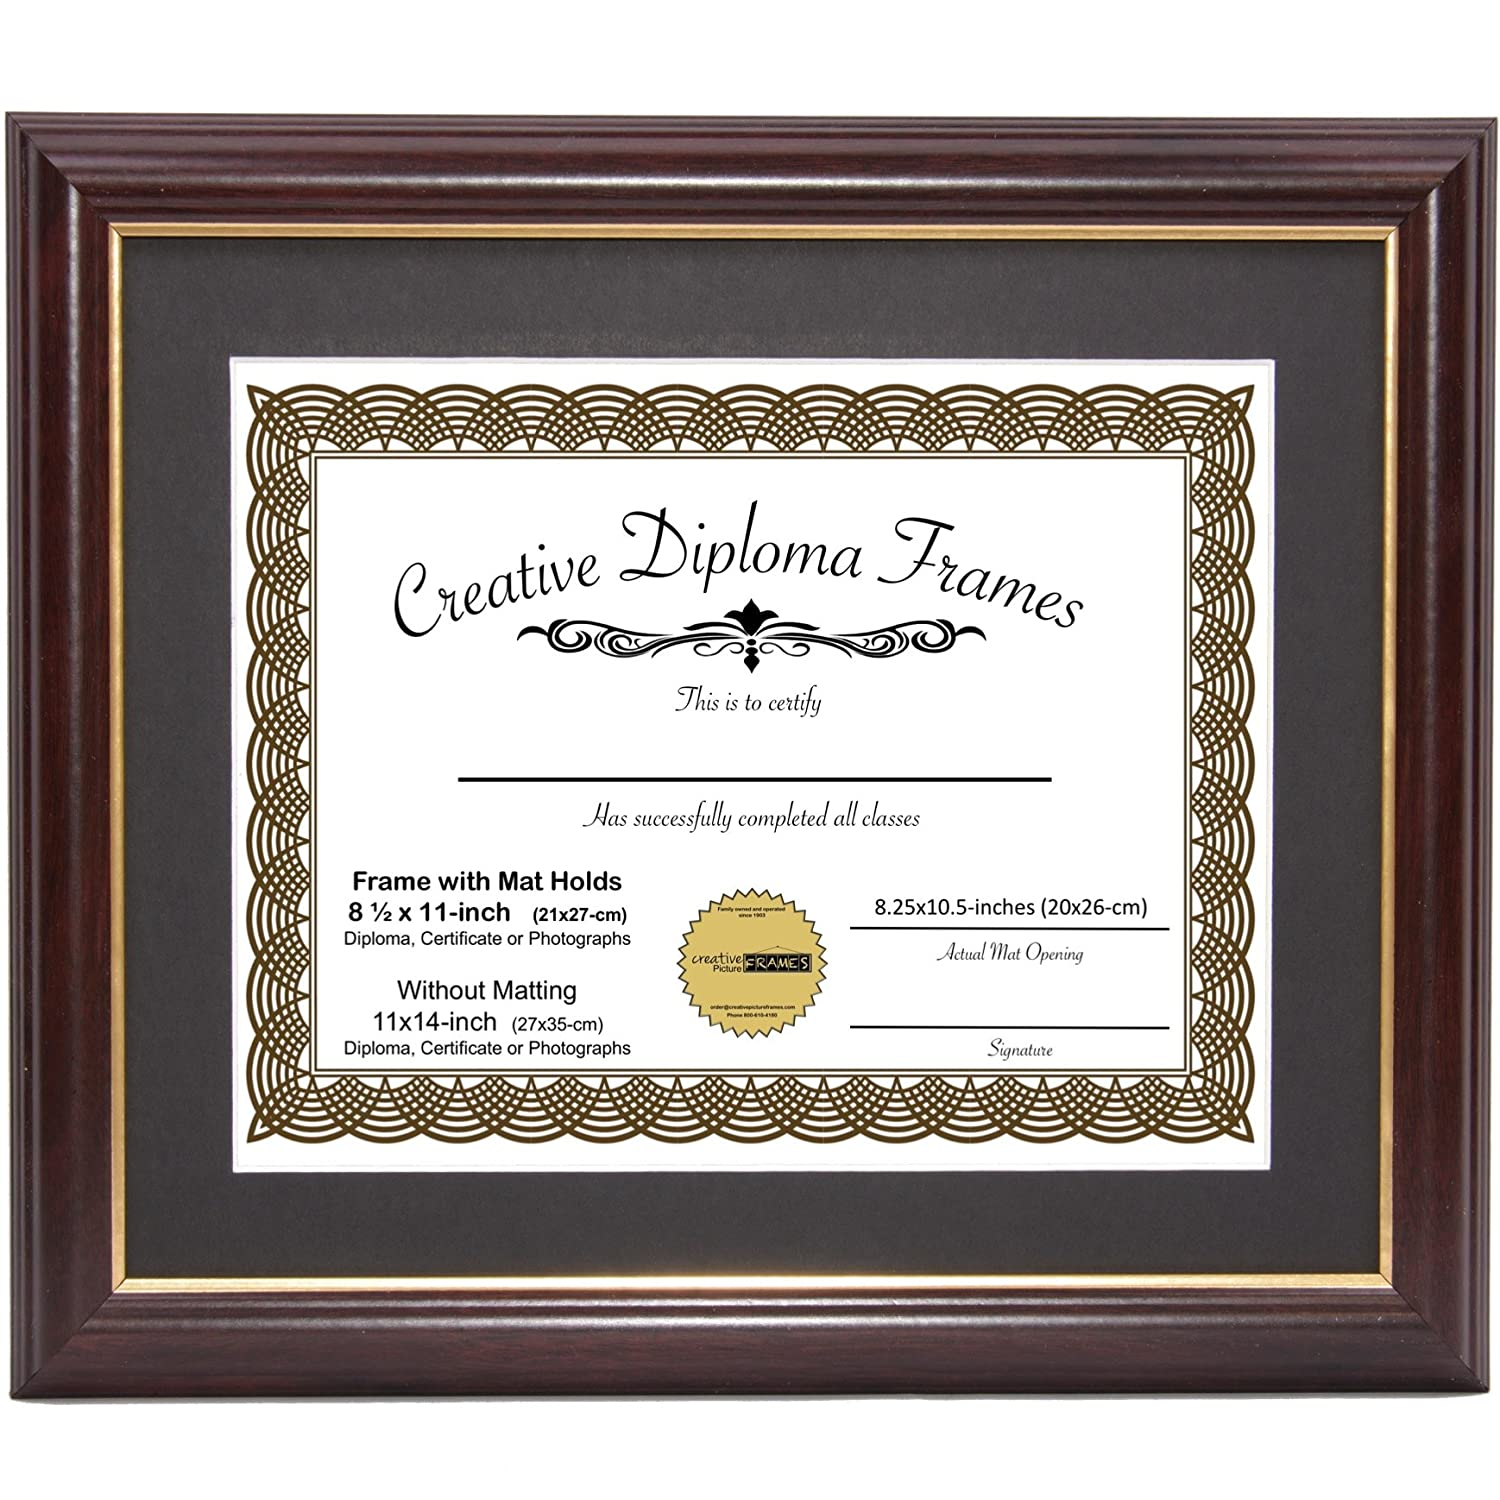 CreativePF [11x14mh.gd] Mahogany Frame Gold Rim, Black Matting Holds 8.5 11-inch Diploma Easel Installed Hangers Creative Picture Frames diploma11x14mh.gold-b